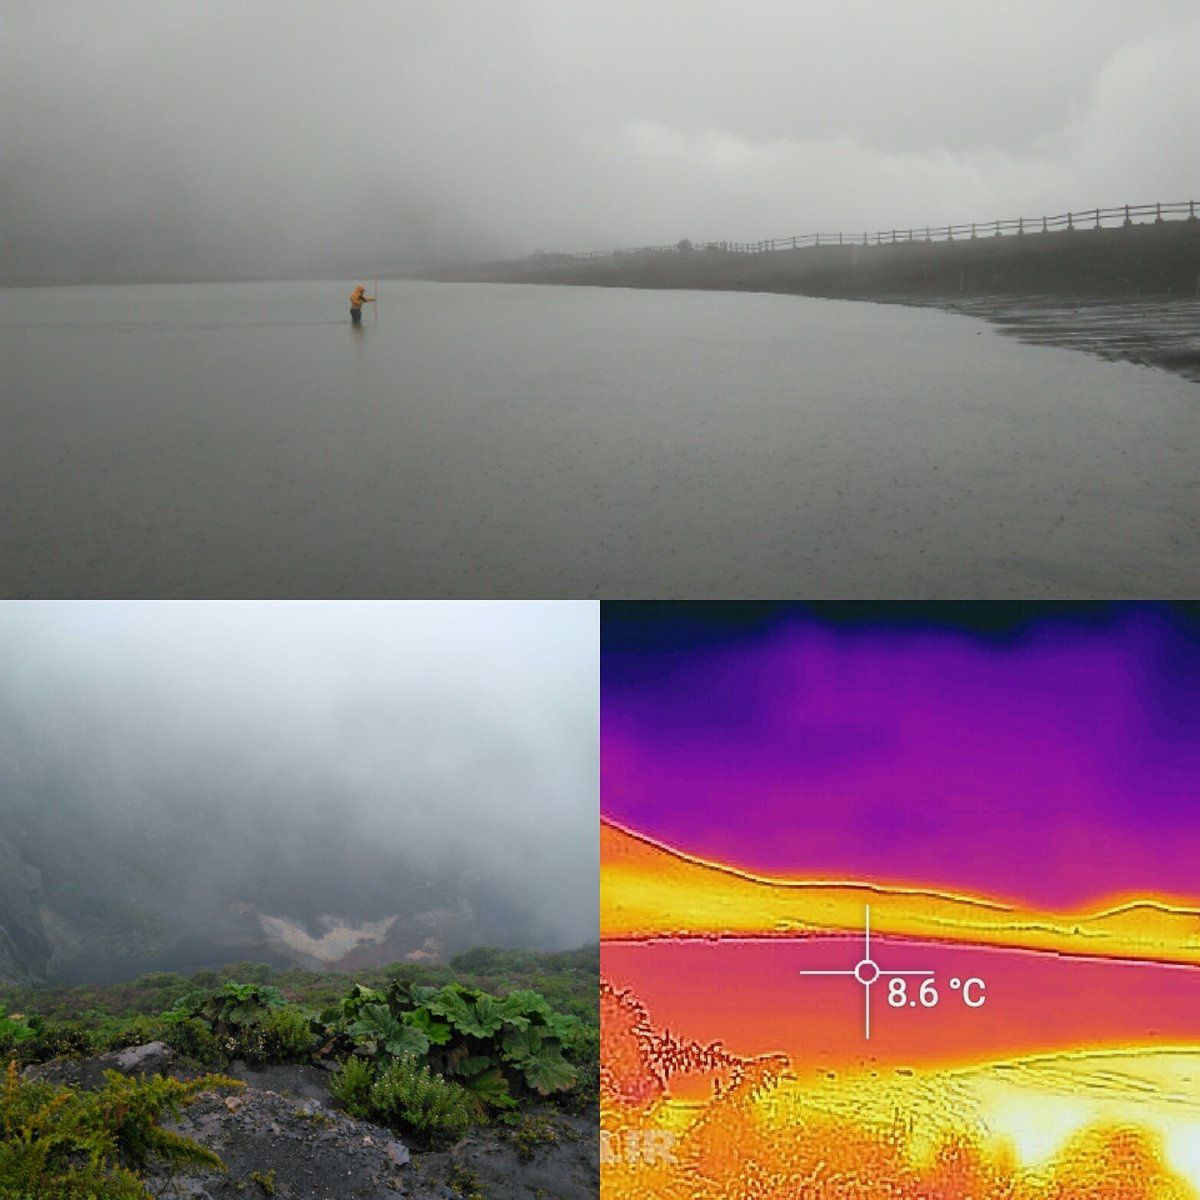 Irazu - new lake, the depth is measured by a man and its temperature by the thermal camera; Lower left, view of the main crater - doc. Gino Gonzalez-llama / Twitter